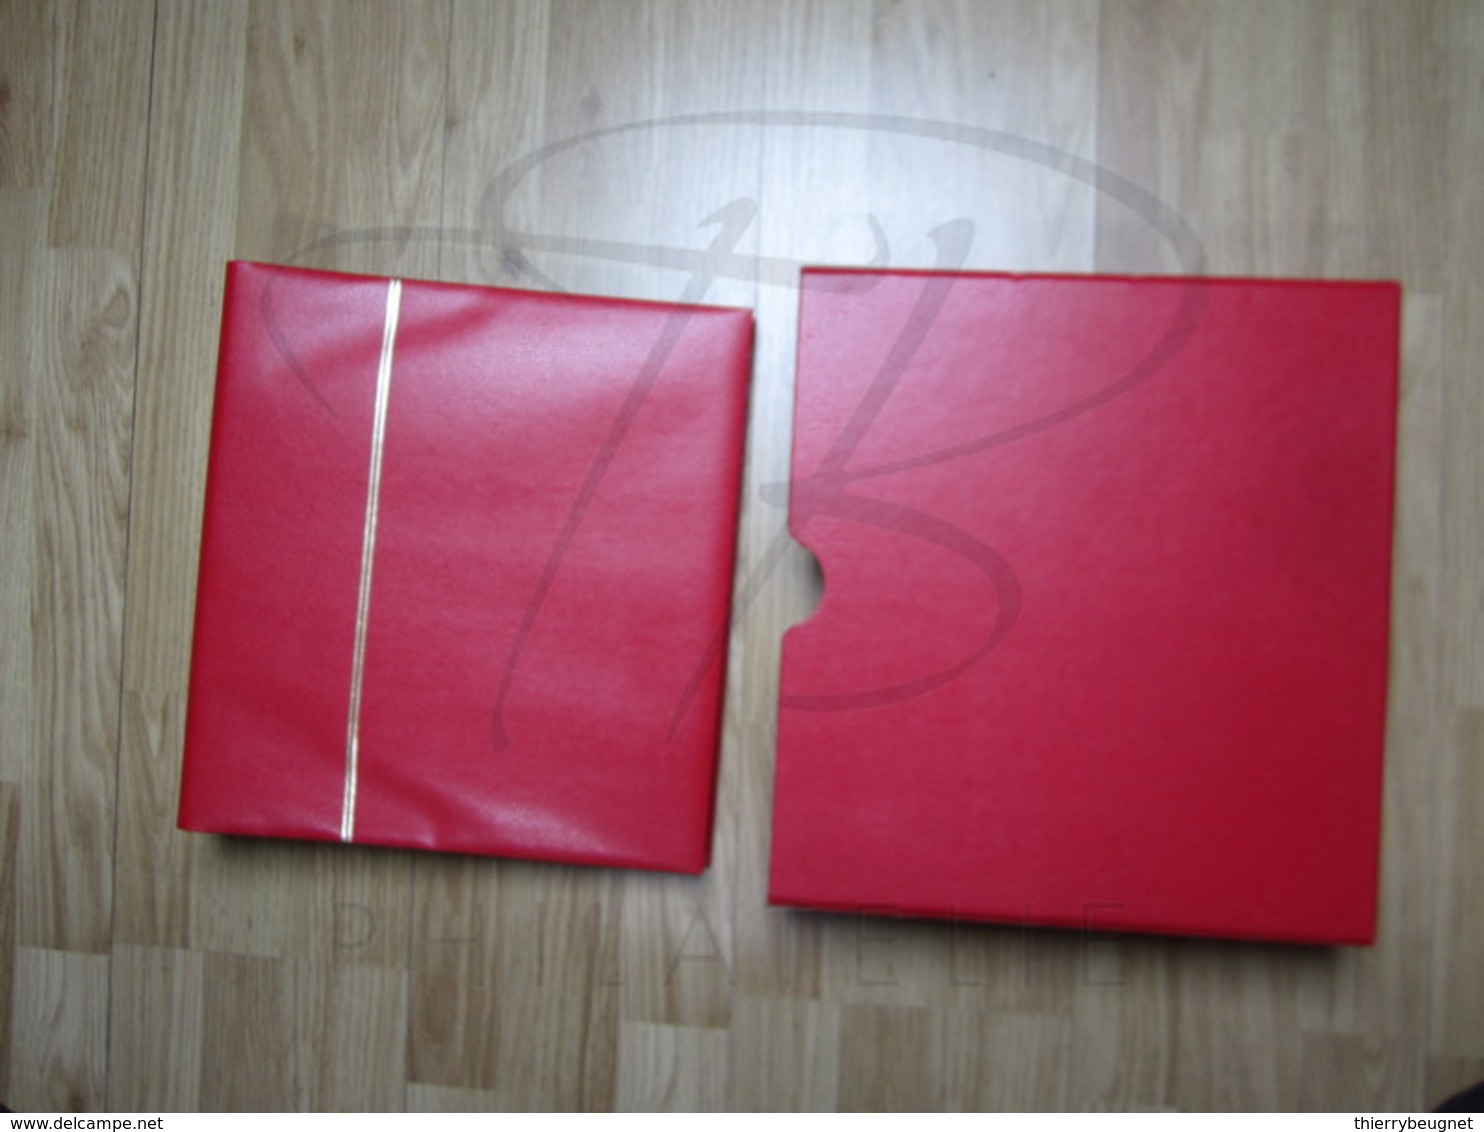 VEND ALBUM YVERT & TELLIER POUR BANDES CARNETS , AVEC BOITIER , ROUGE !!! (b) - Binders With Pages